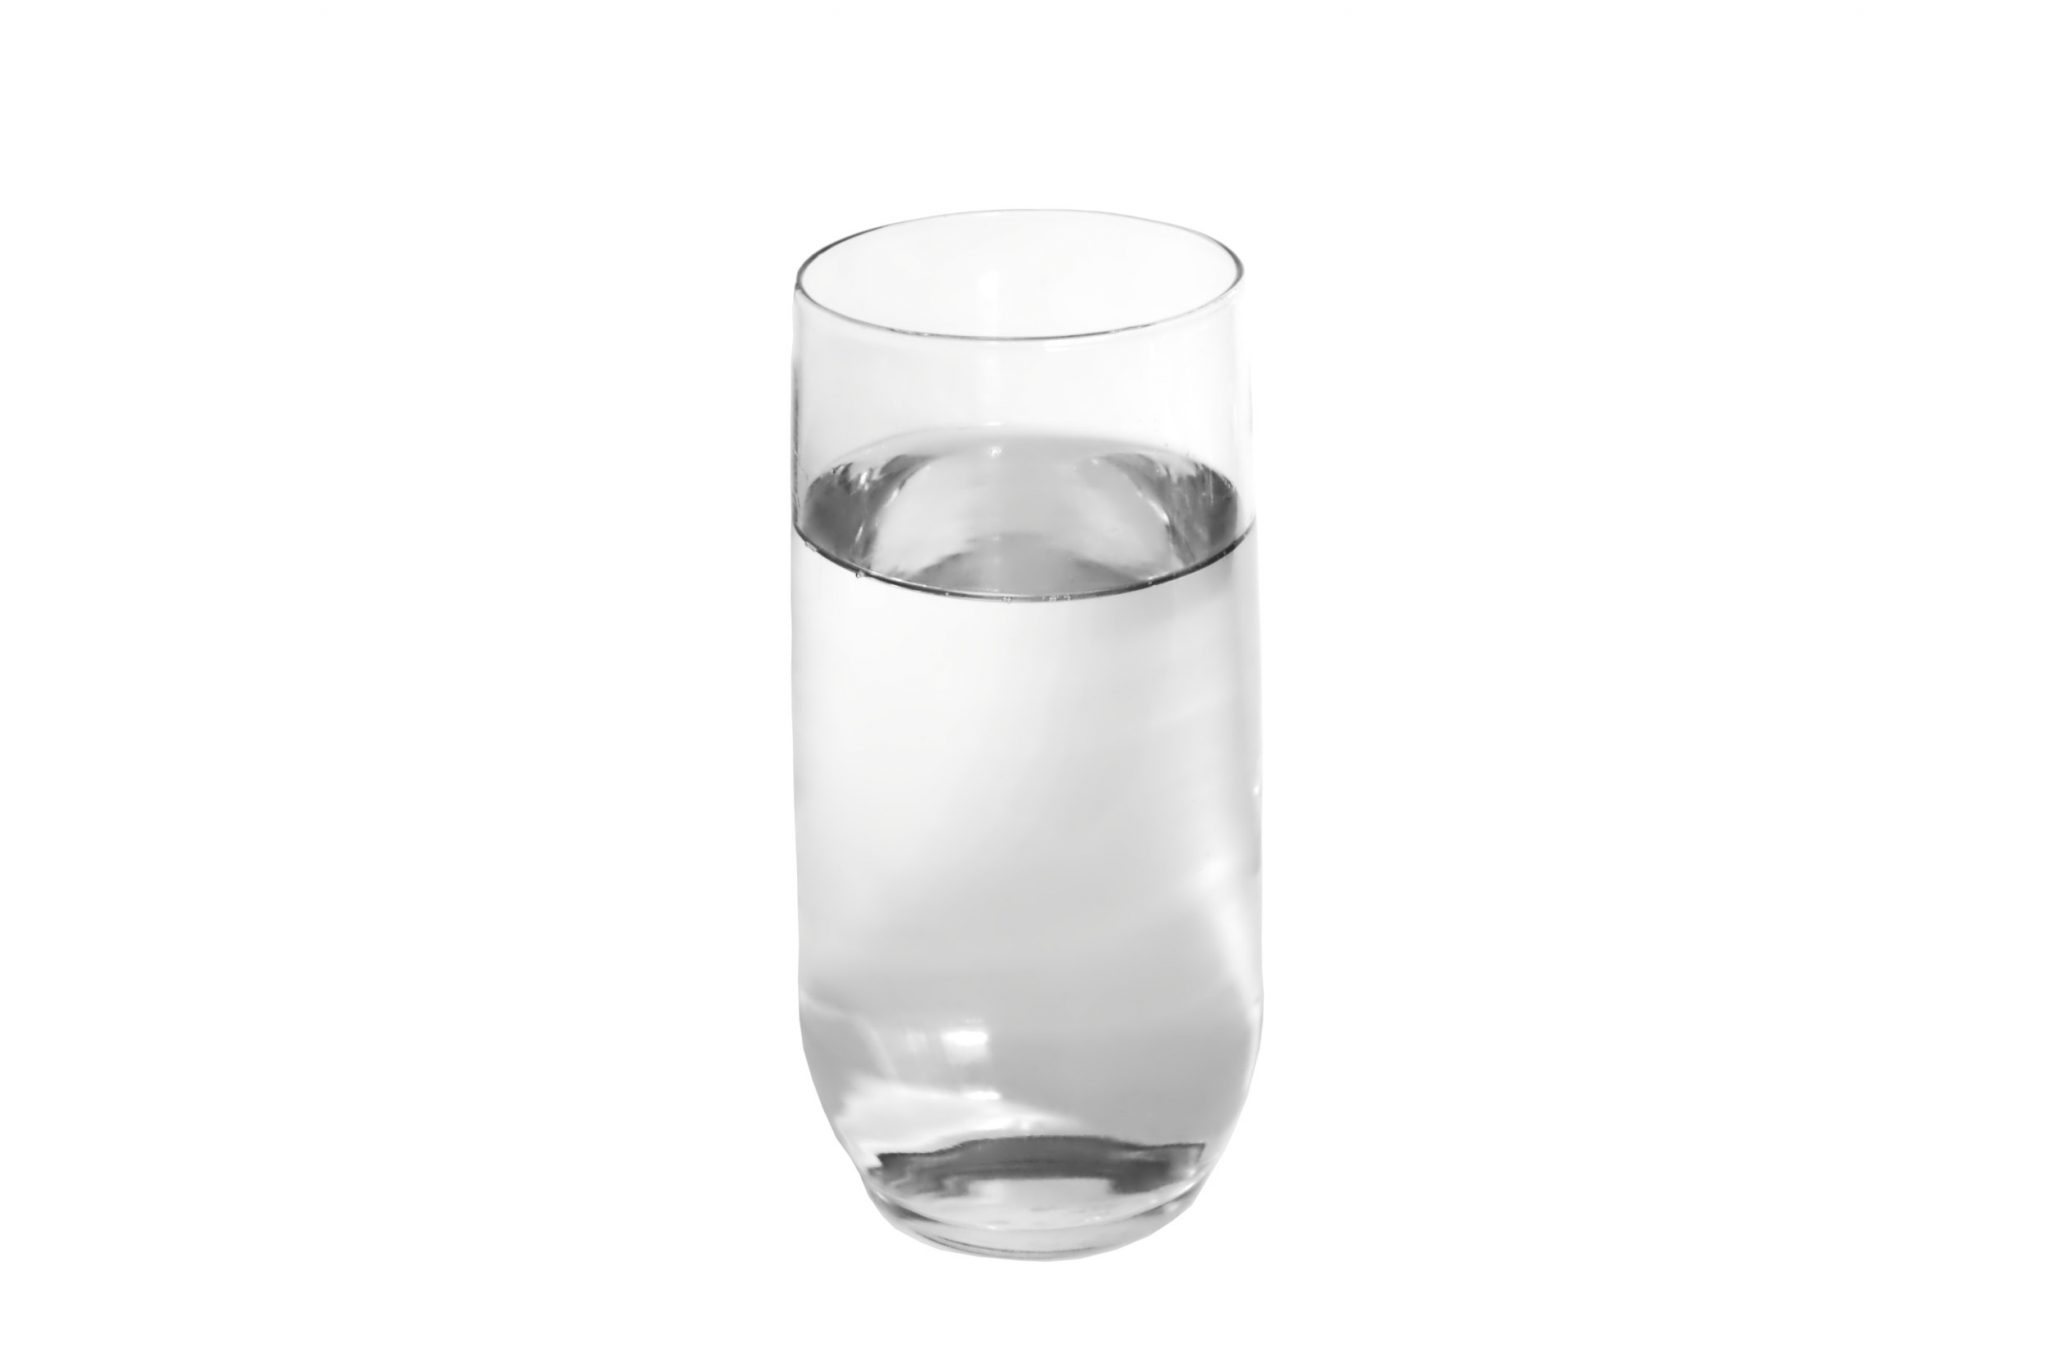 woda, glass of water, szklanka wody, water